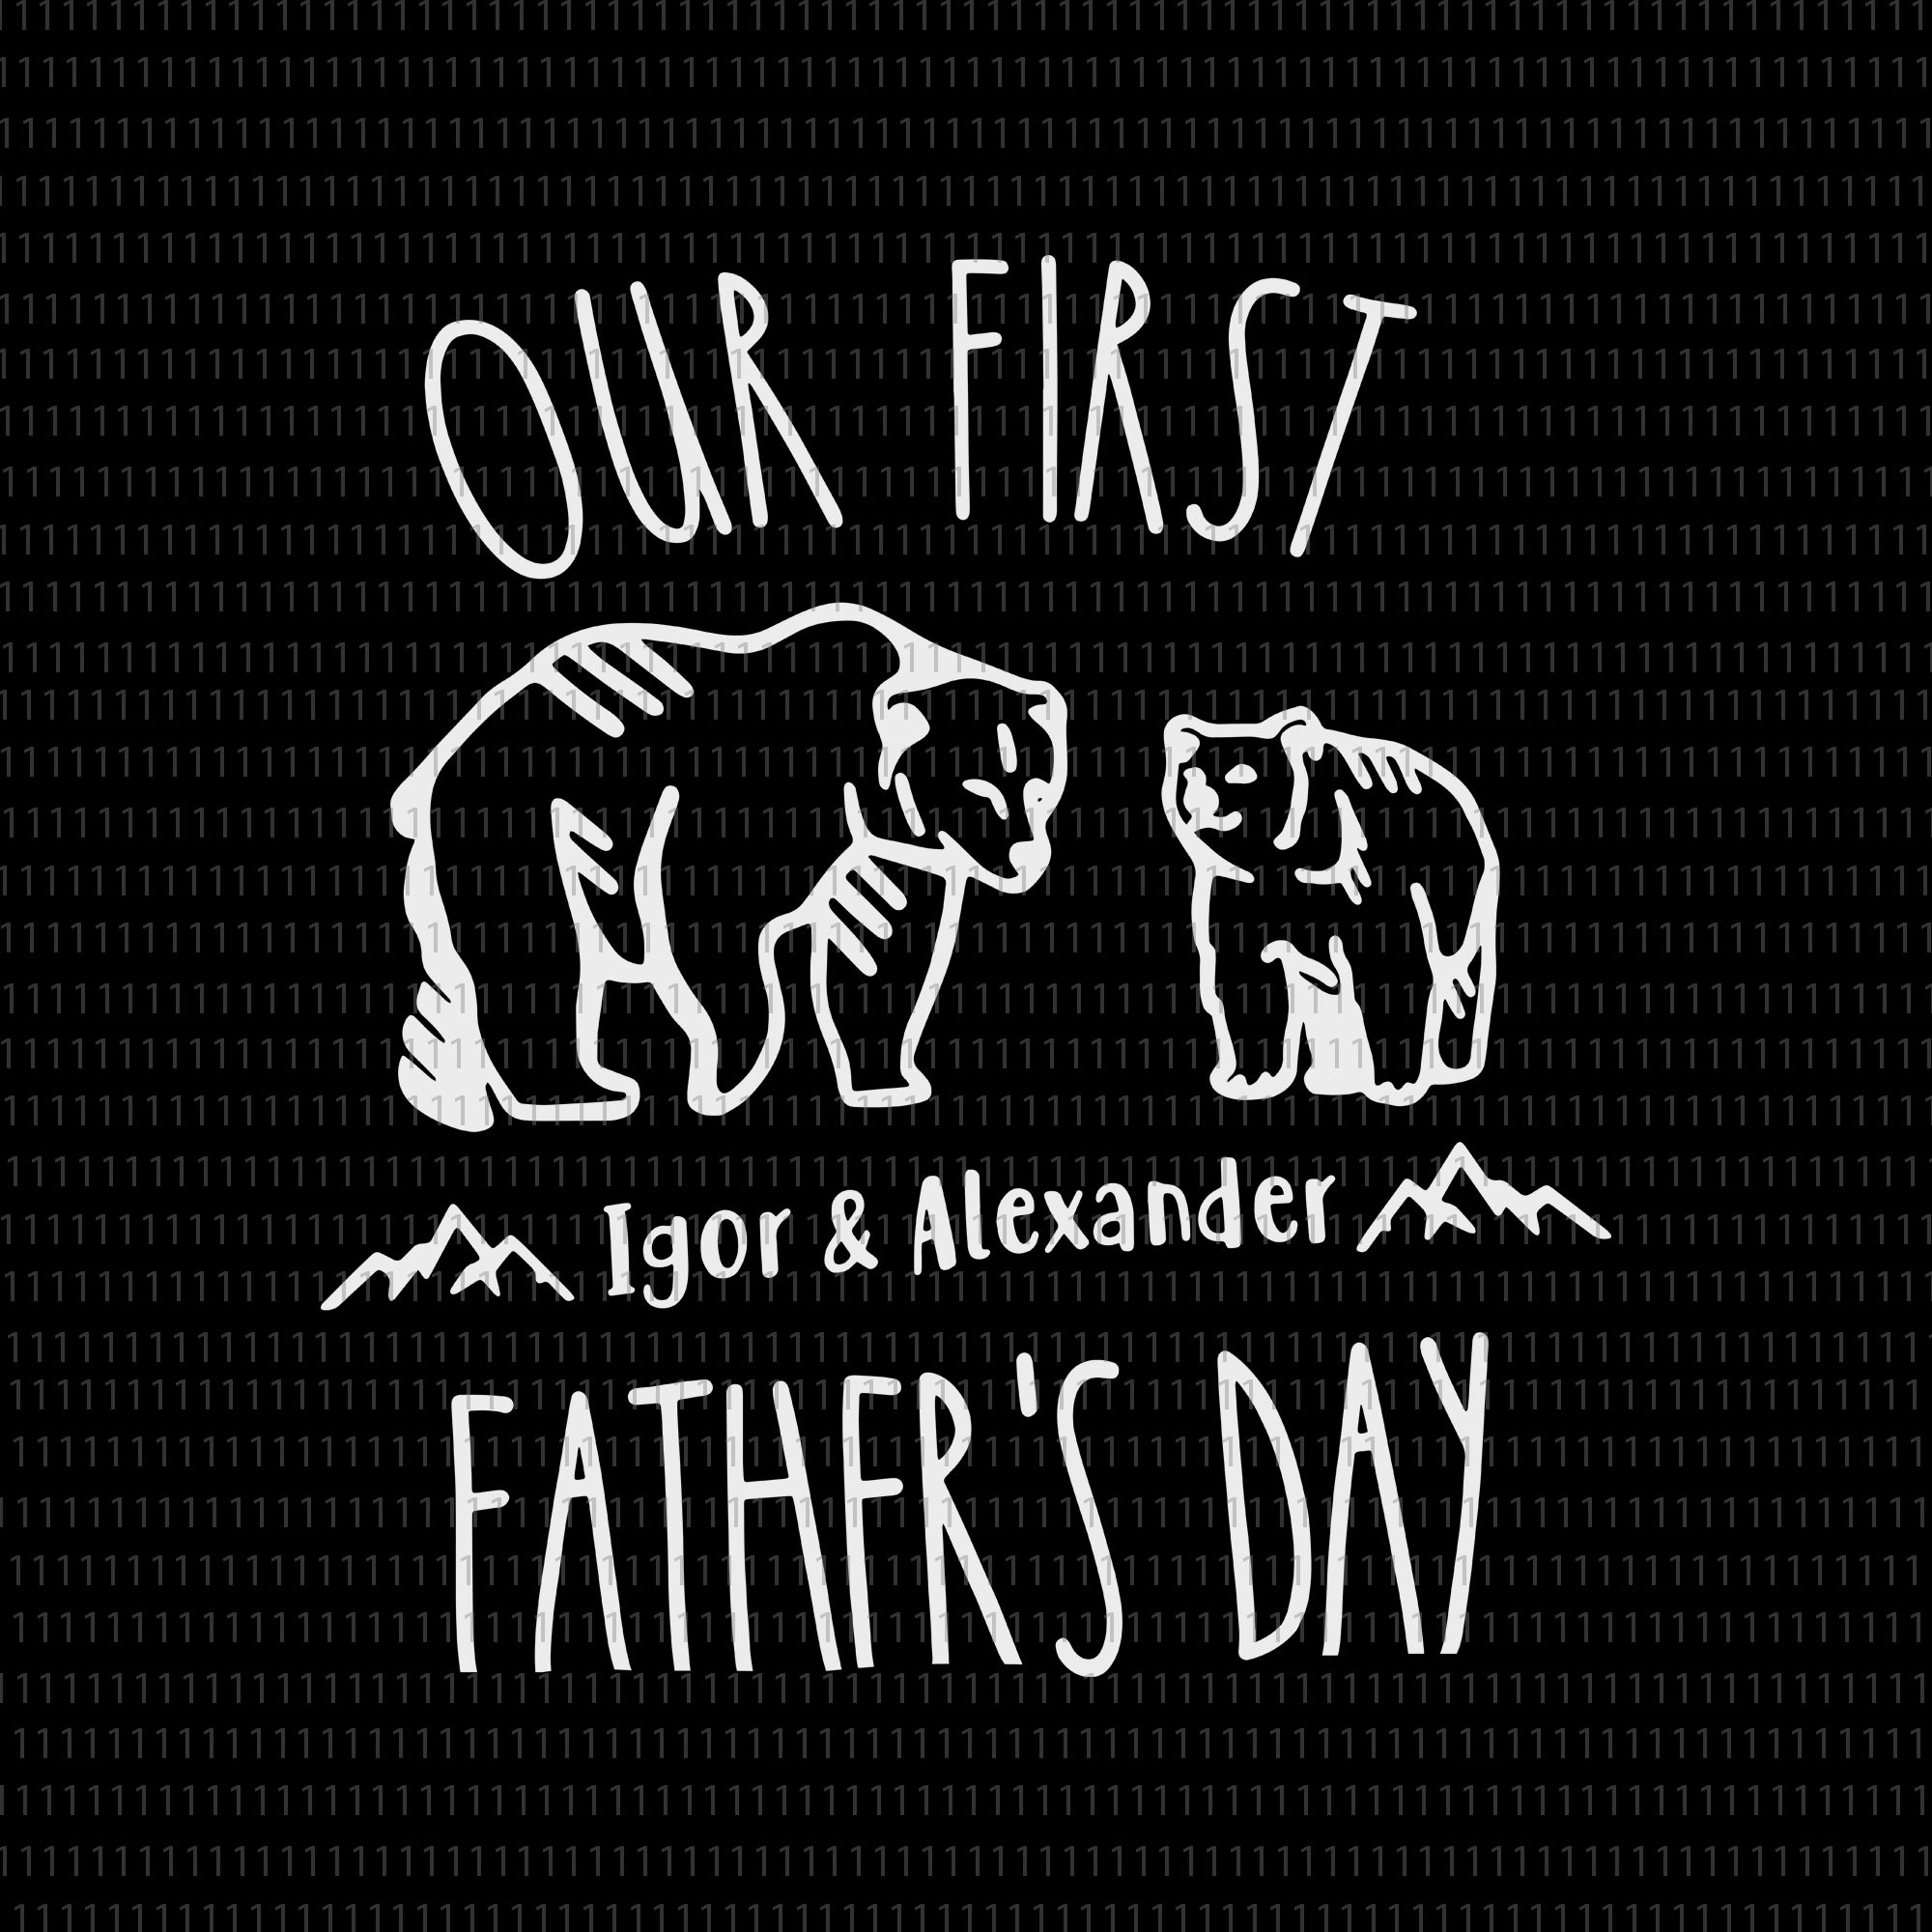 Our first  I got  & alexander father's day svg, Our first  I got  & alexander father's day, father's day svg, father day png, father day, bear svg, father svg, daddy